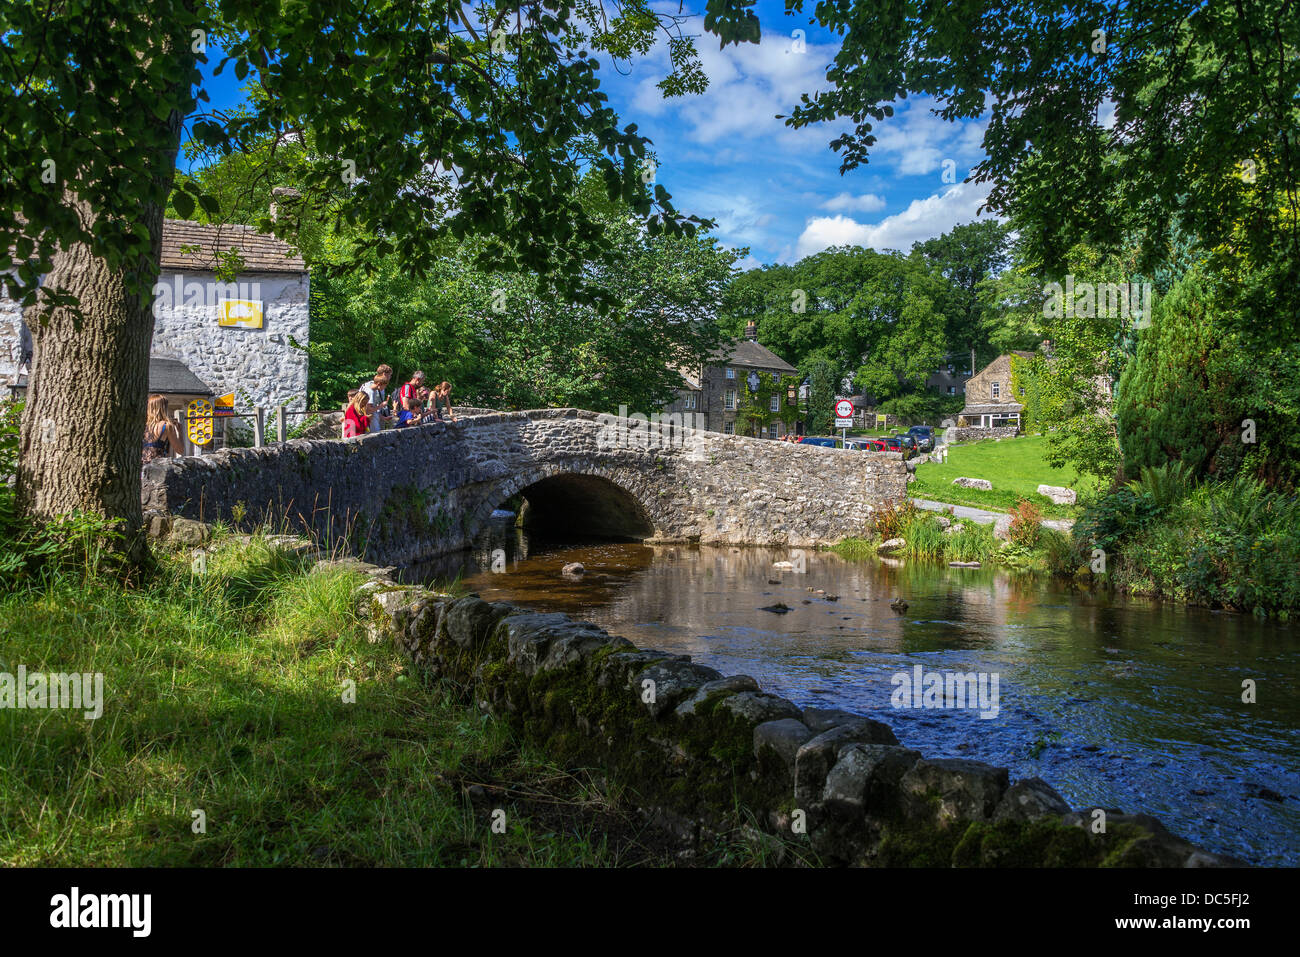 The village of Malham in North Yorkshire. North West England. - Stock Image